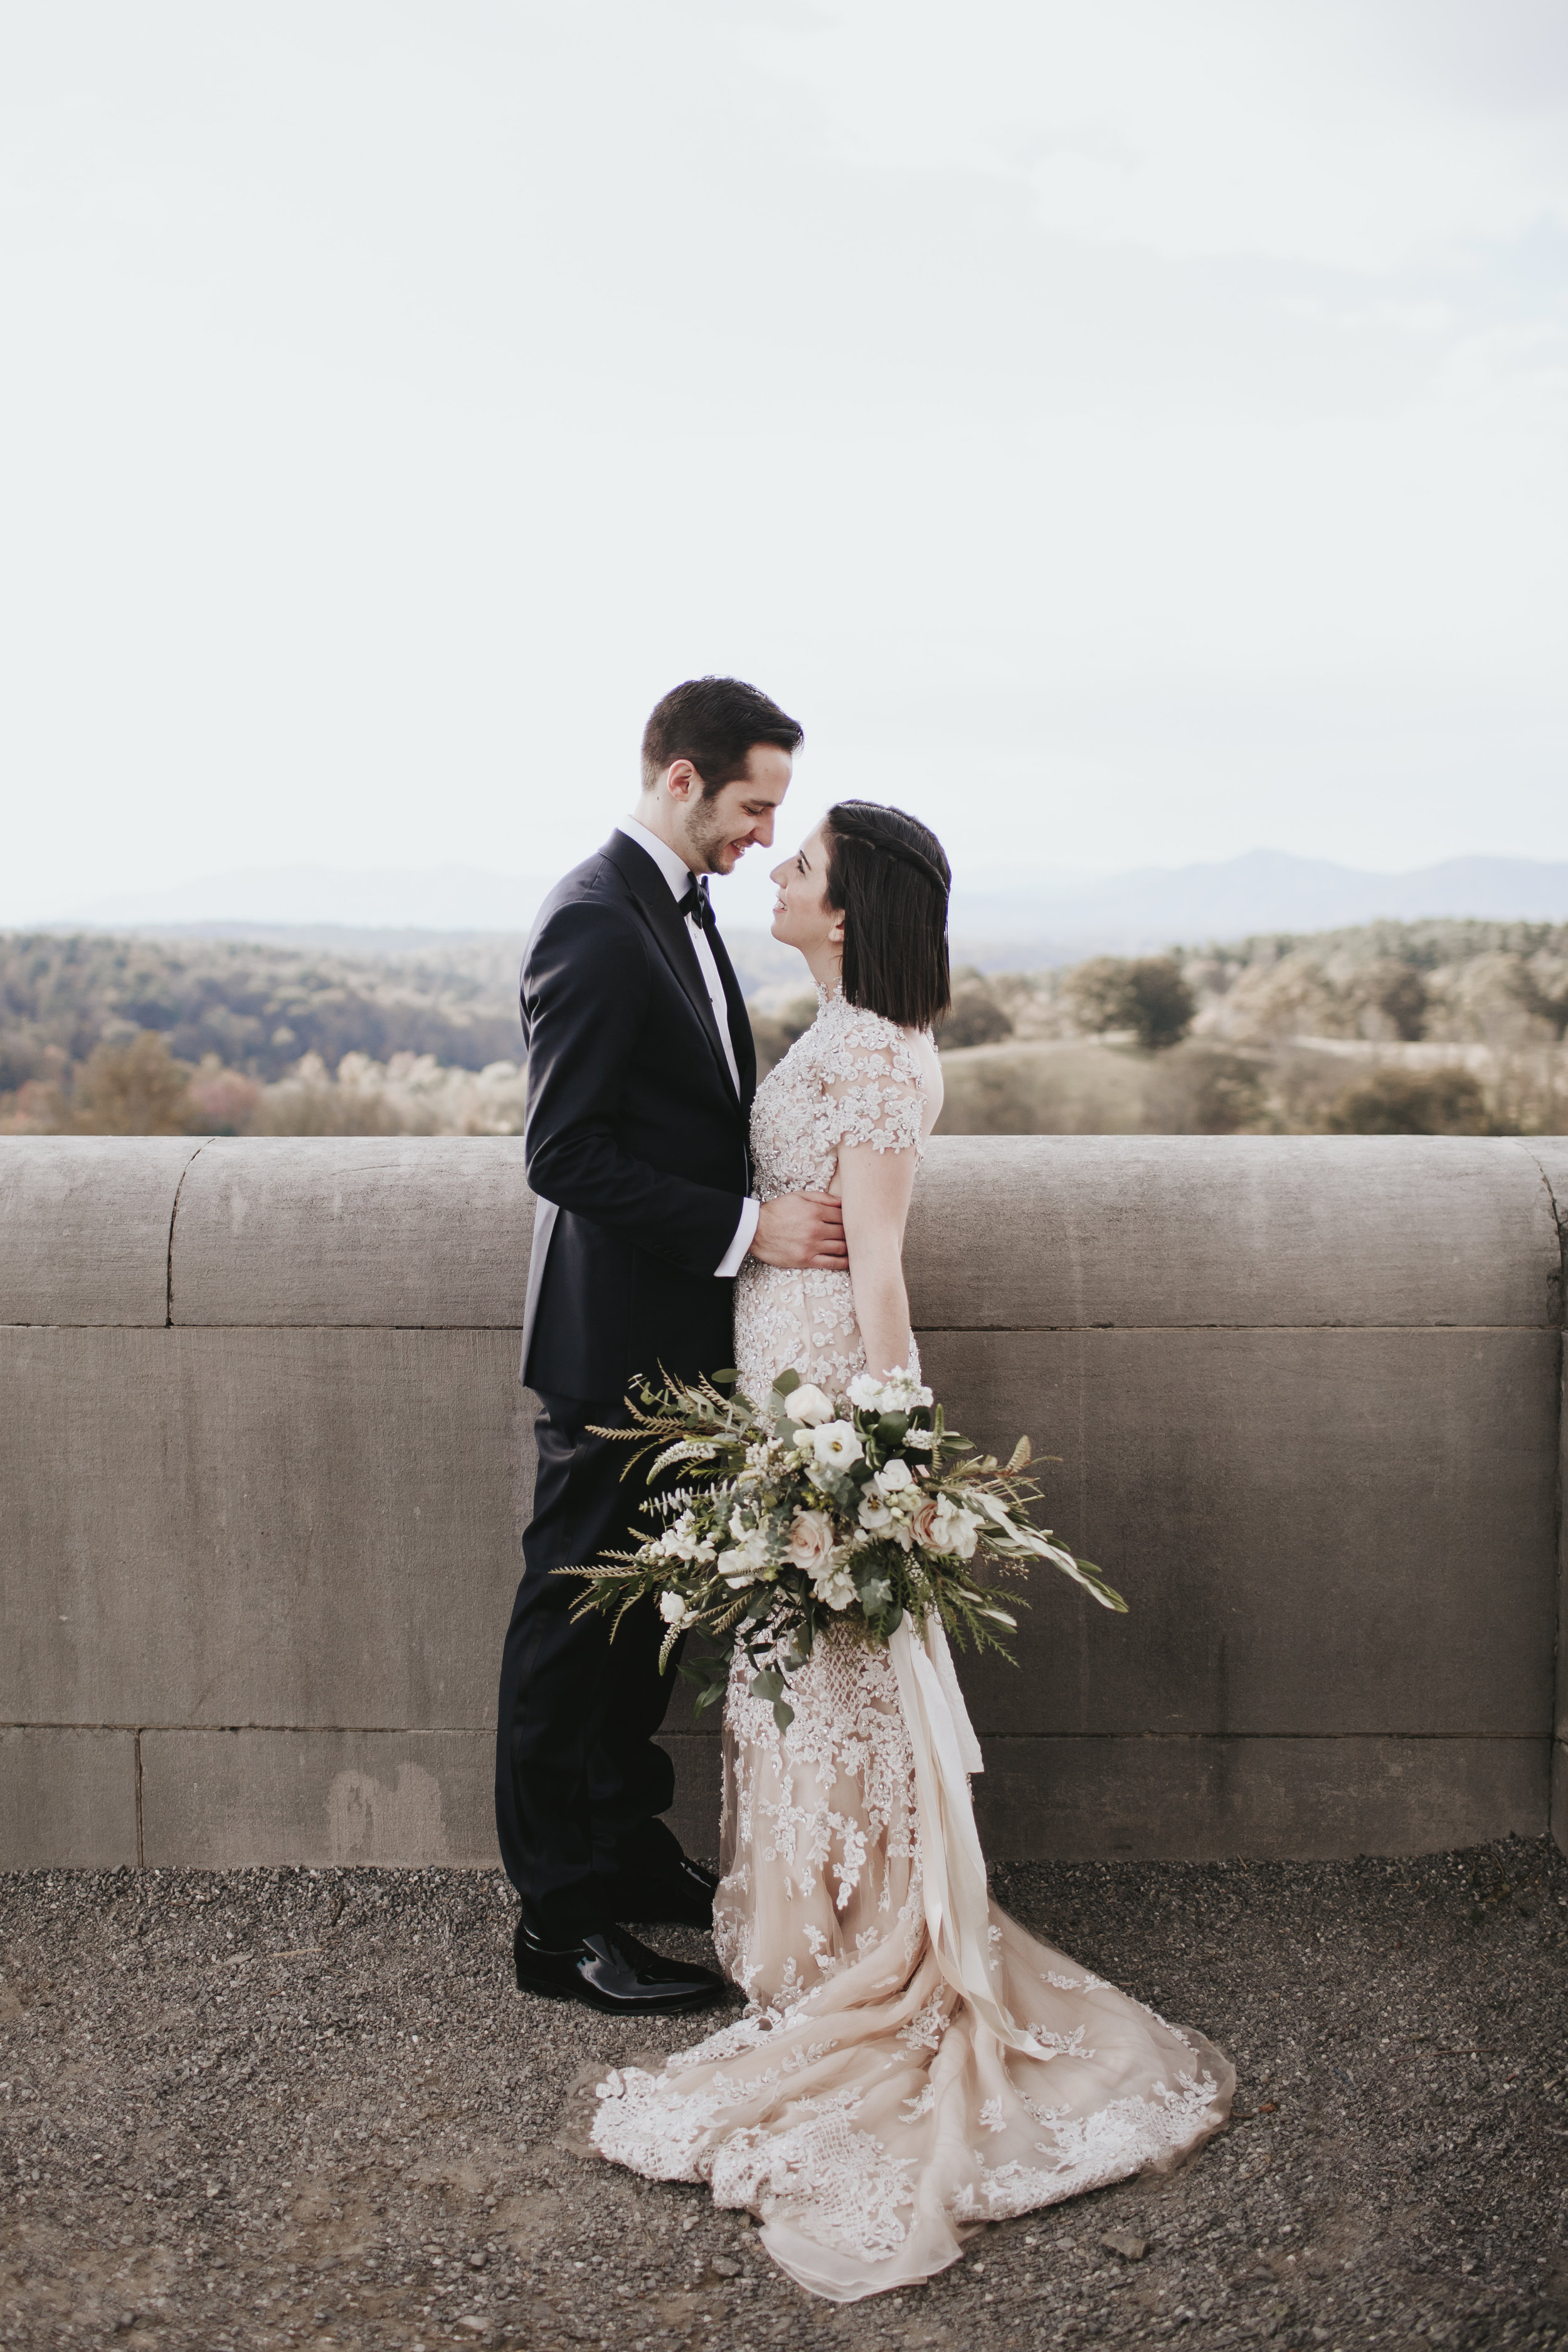 XoeElyWedding - Alicia White Photography-345.jpg